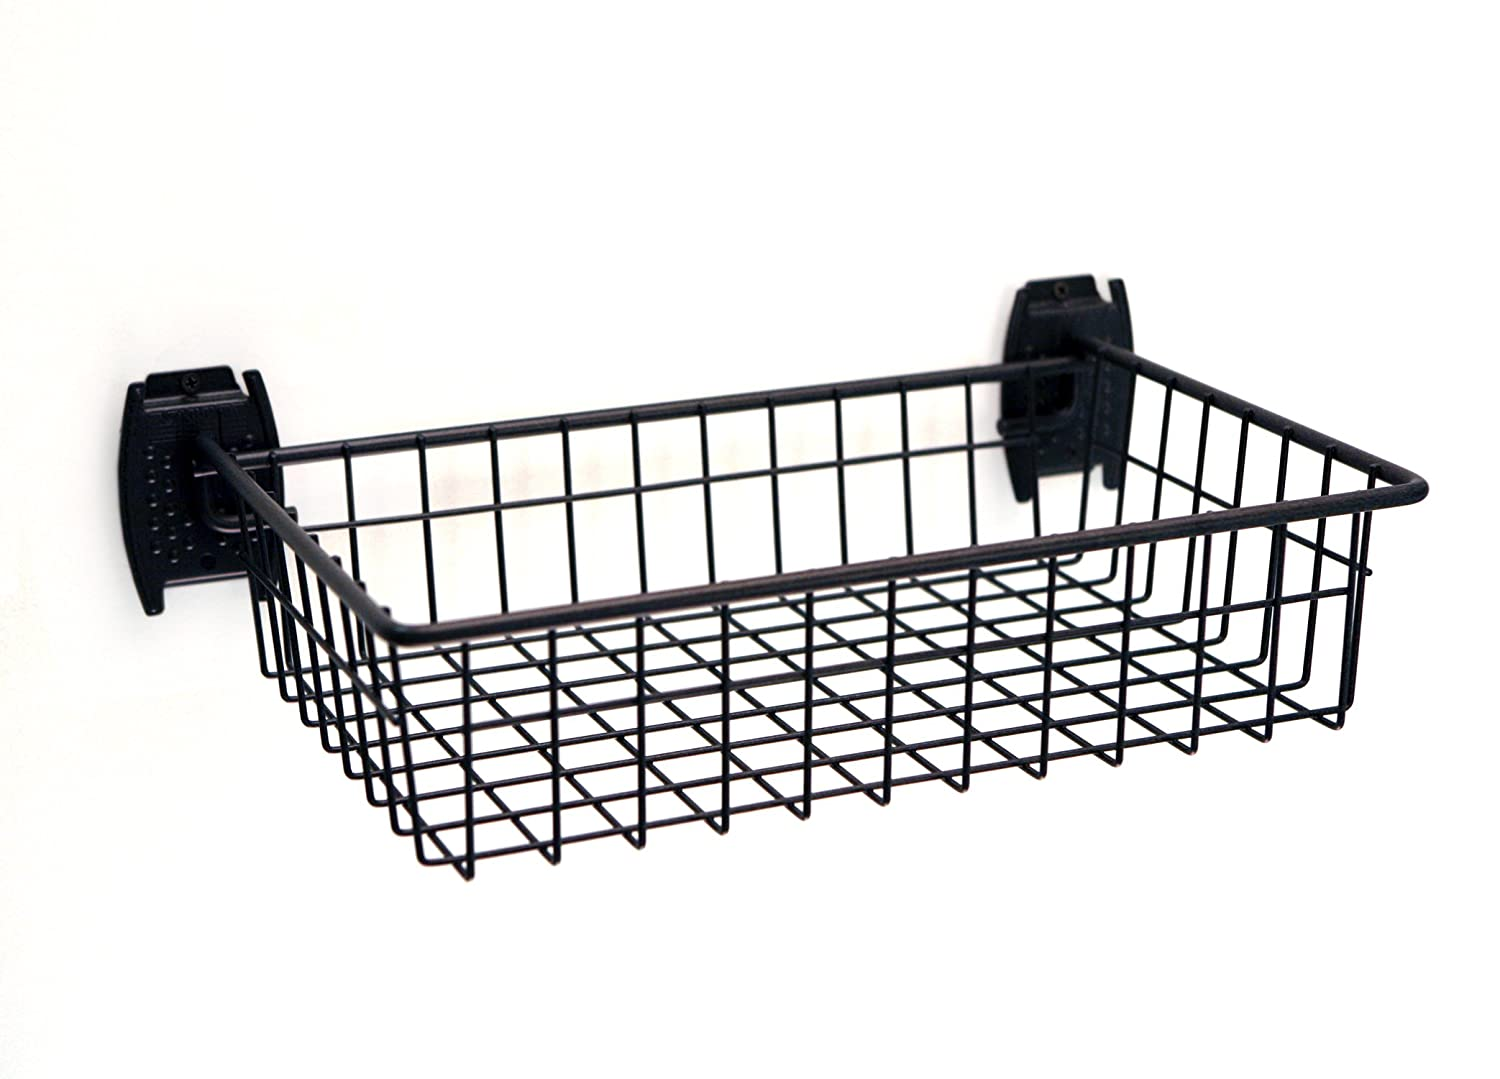 Organized Living Activity Organizer The Basket - Granite 7115562050